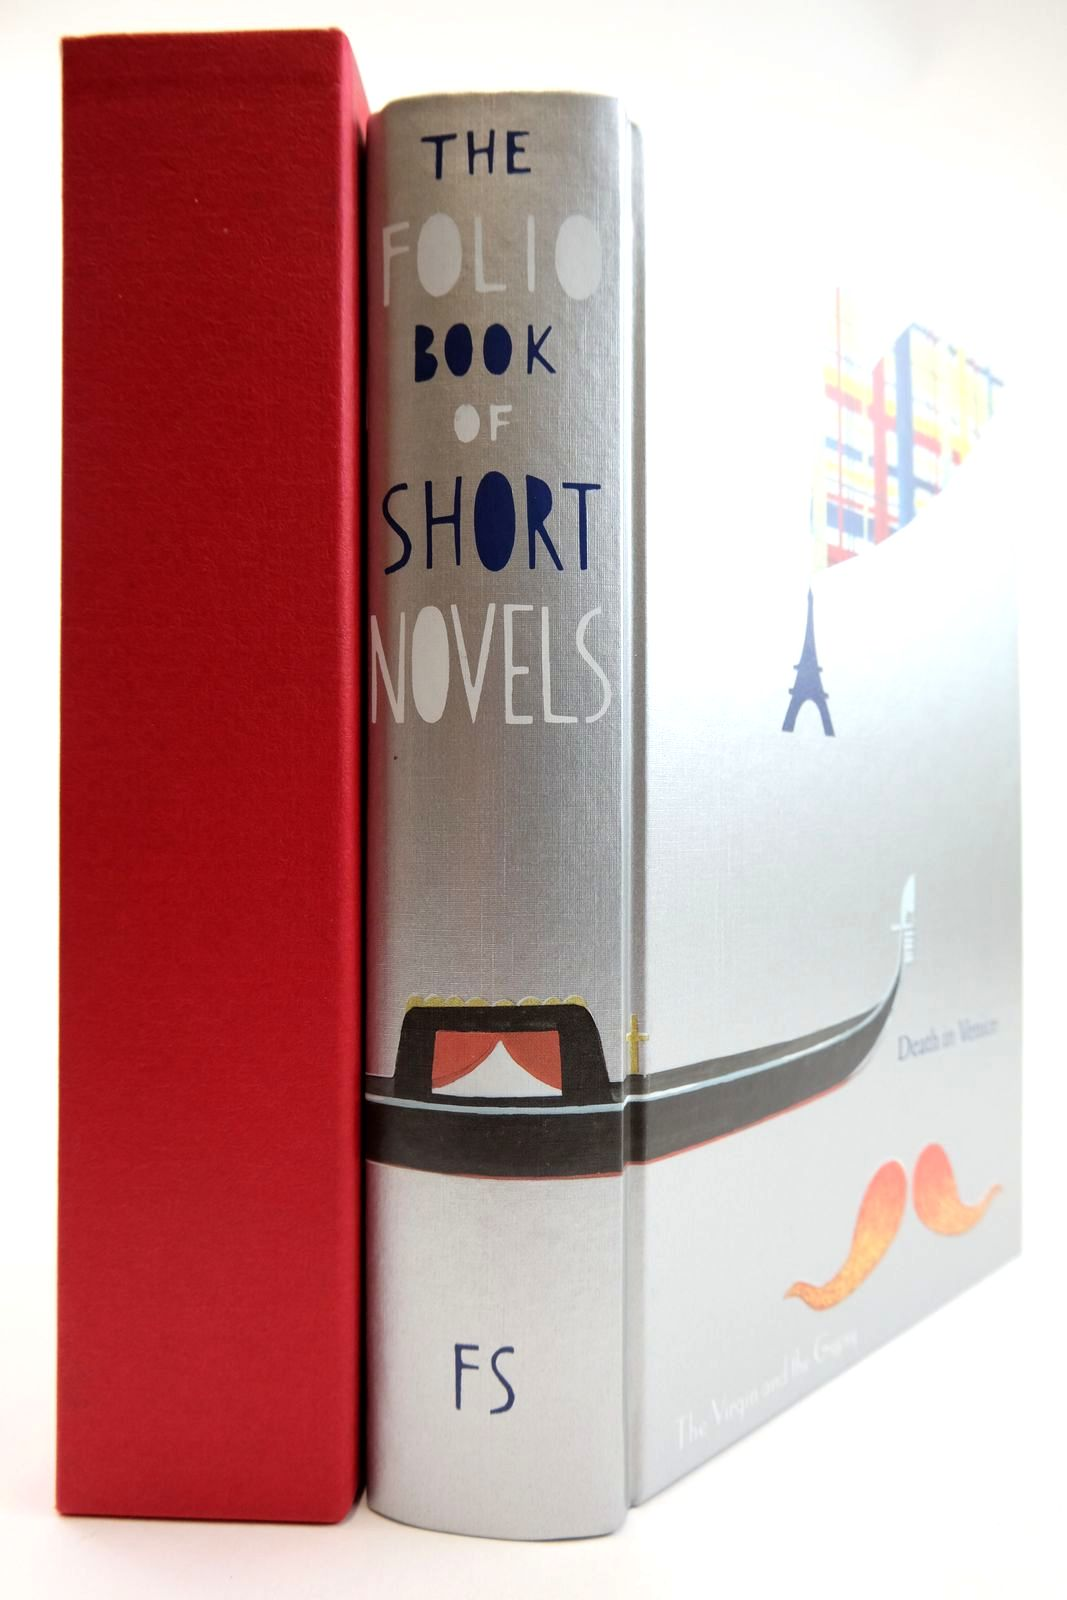 Photo of THE FOLIO BOOK OF SHORT NOVELS- Stock Number: 2133233